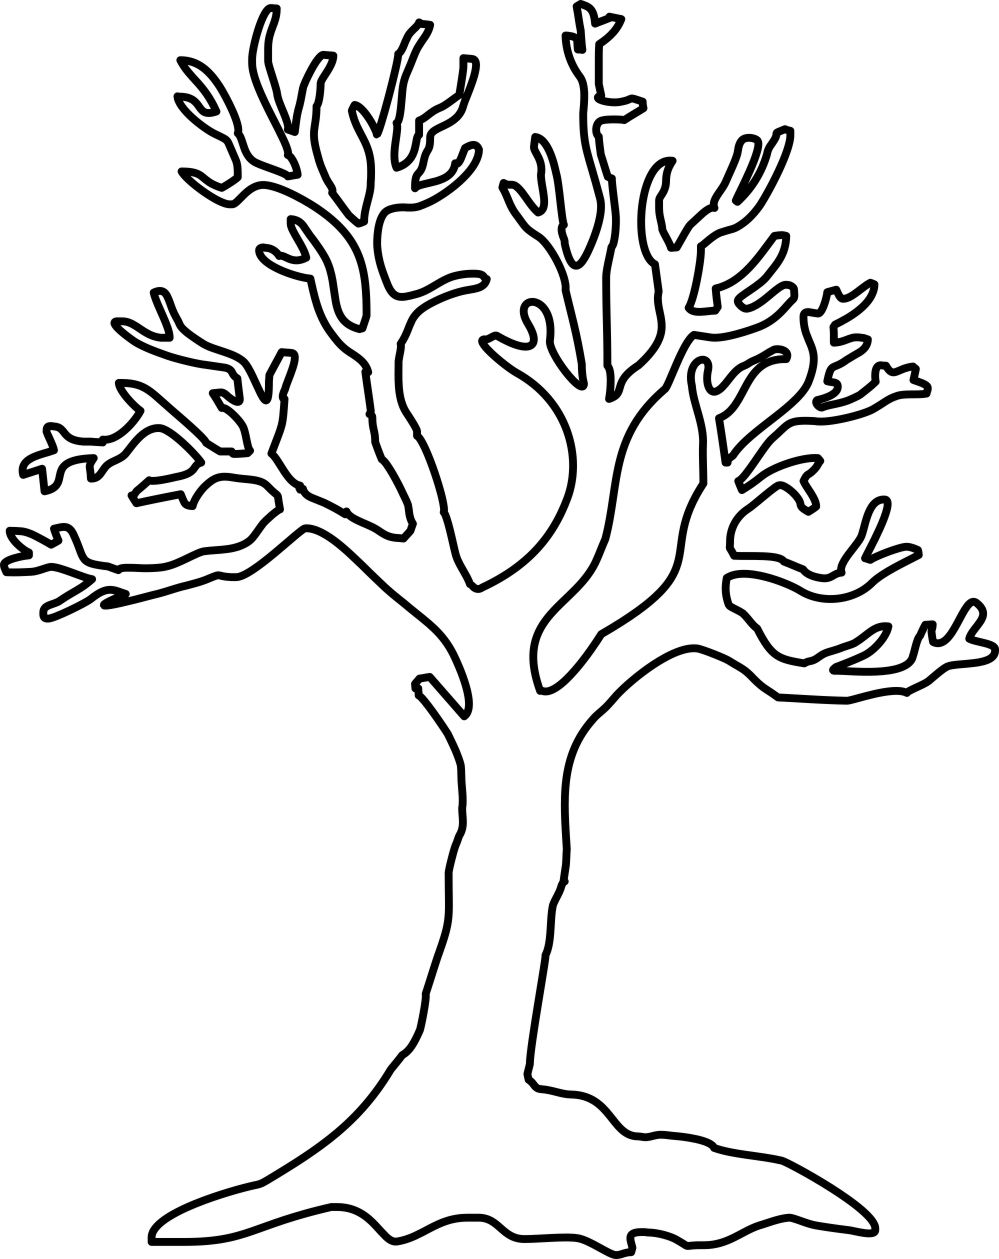 trees of life drawing - Google Search | Art - Drawing, Doodles ...